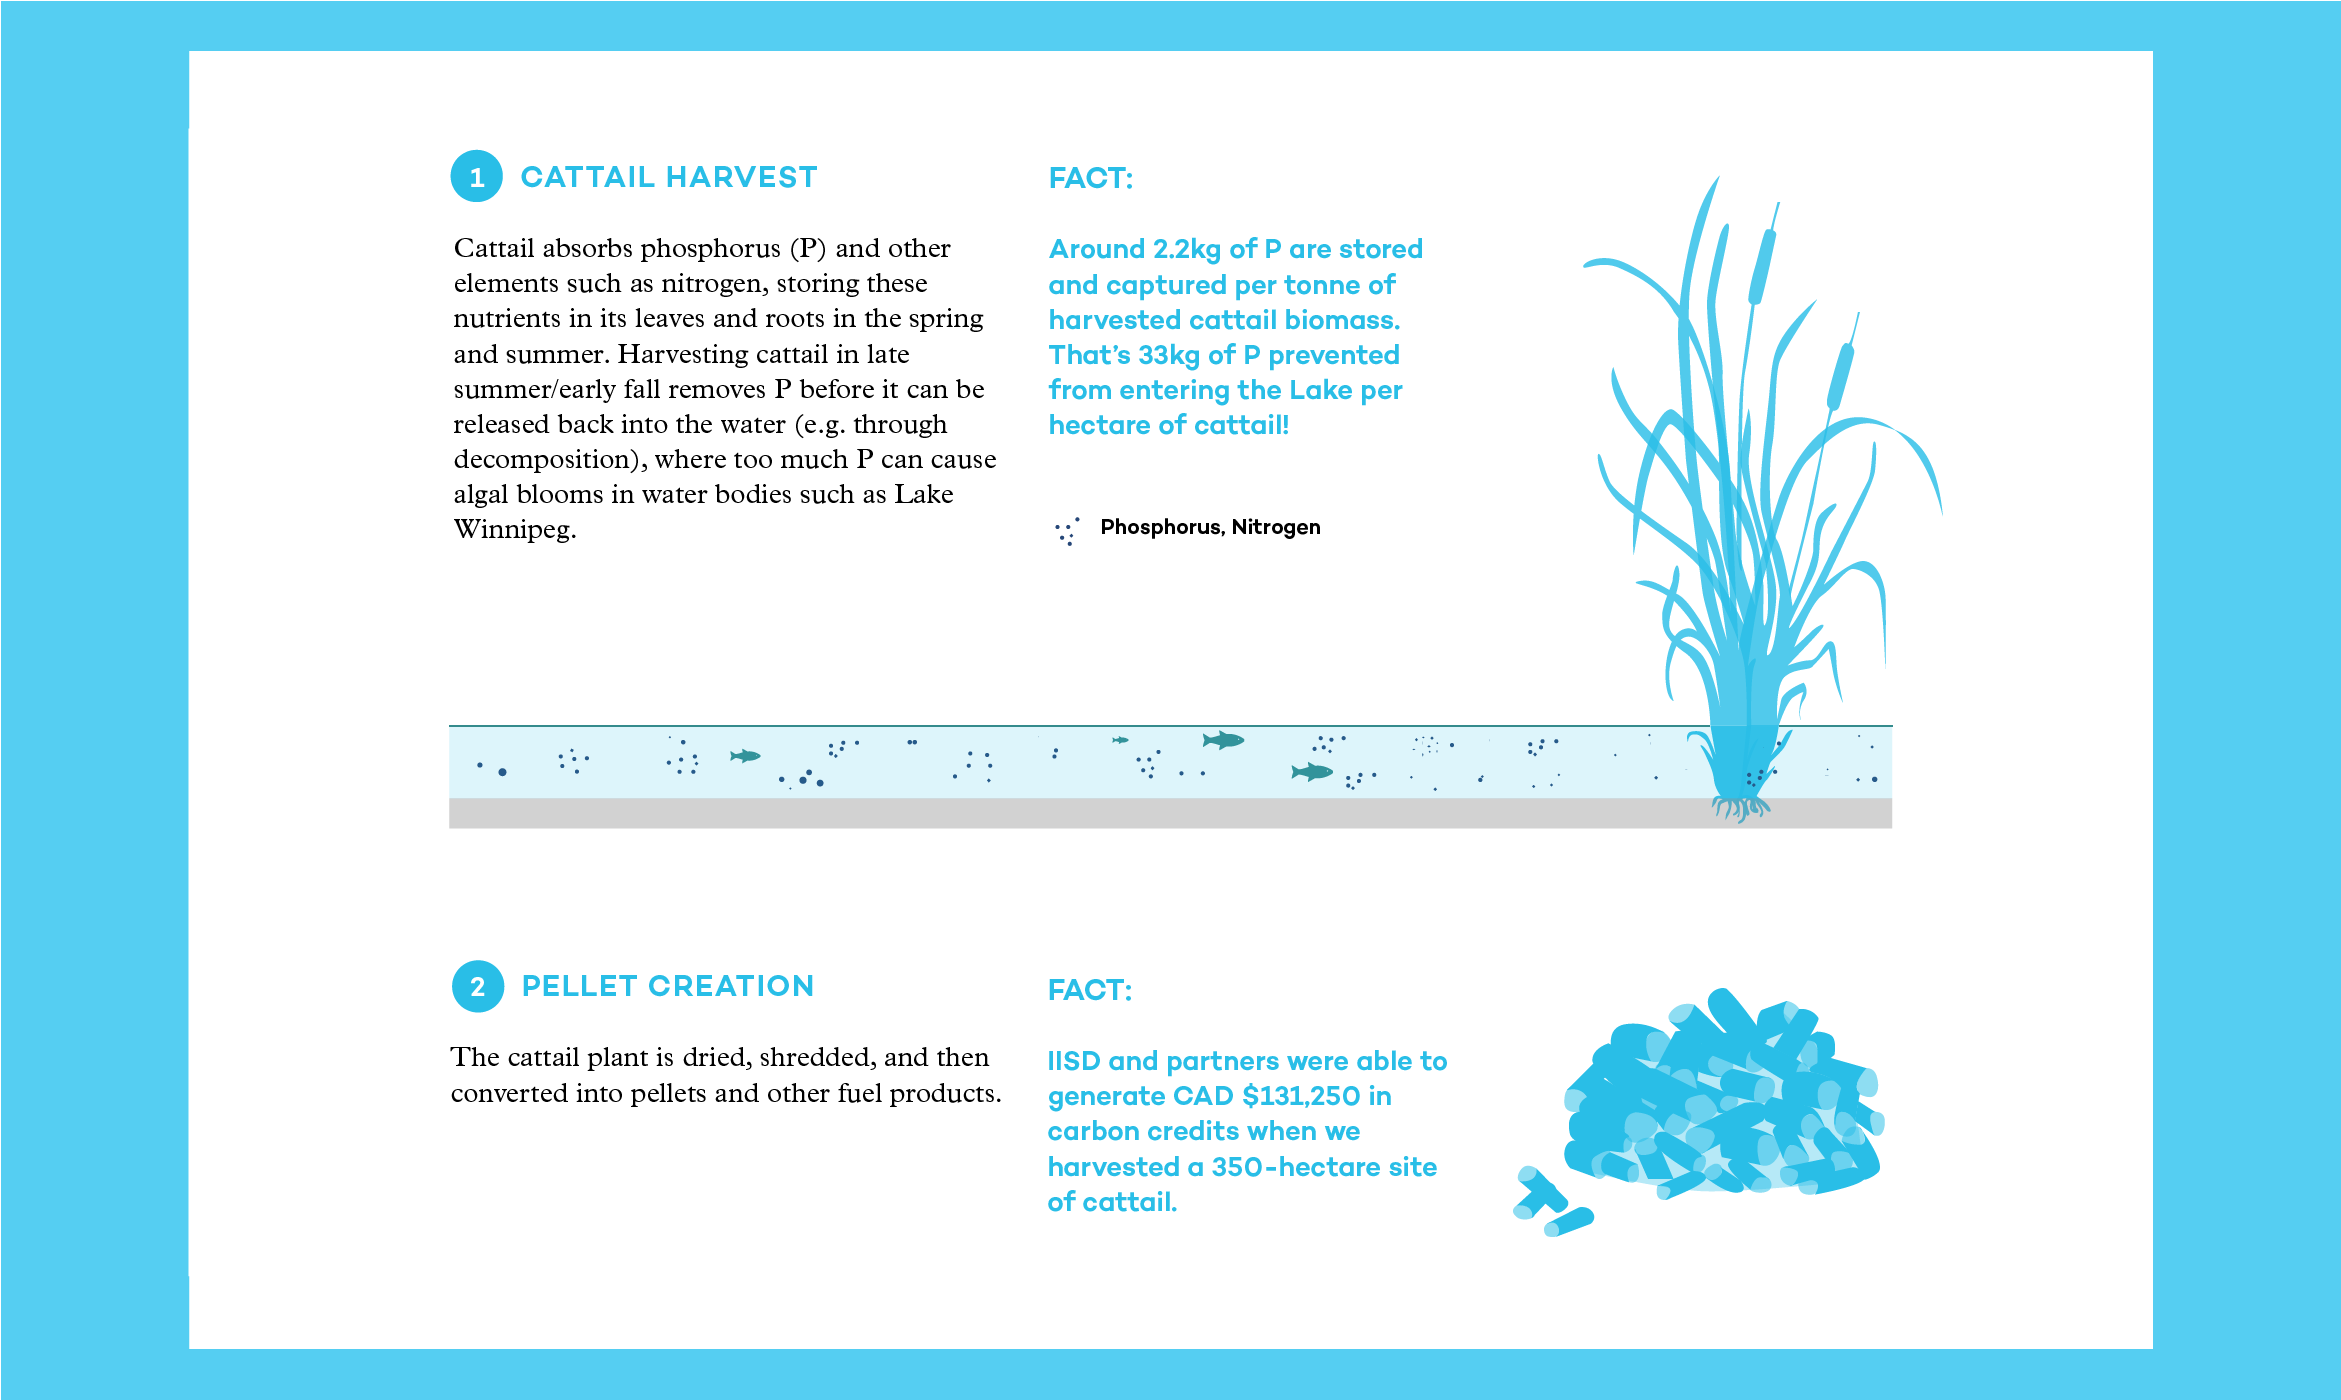 Illustration describing Cattail Harvest and Pellet Creation extracted from the 2015 Annual Report.